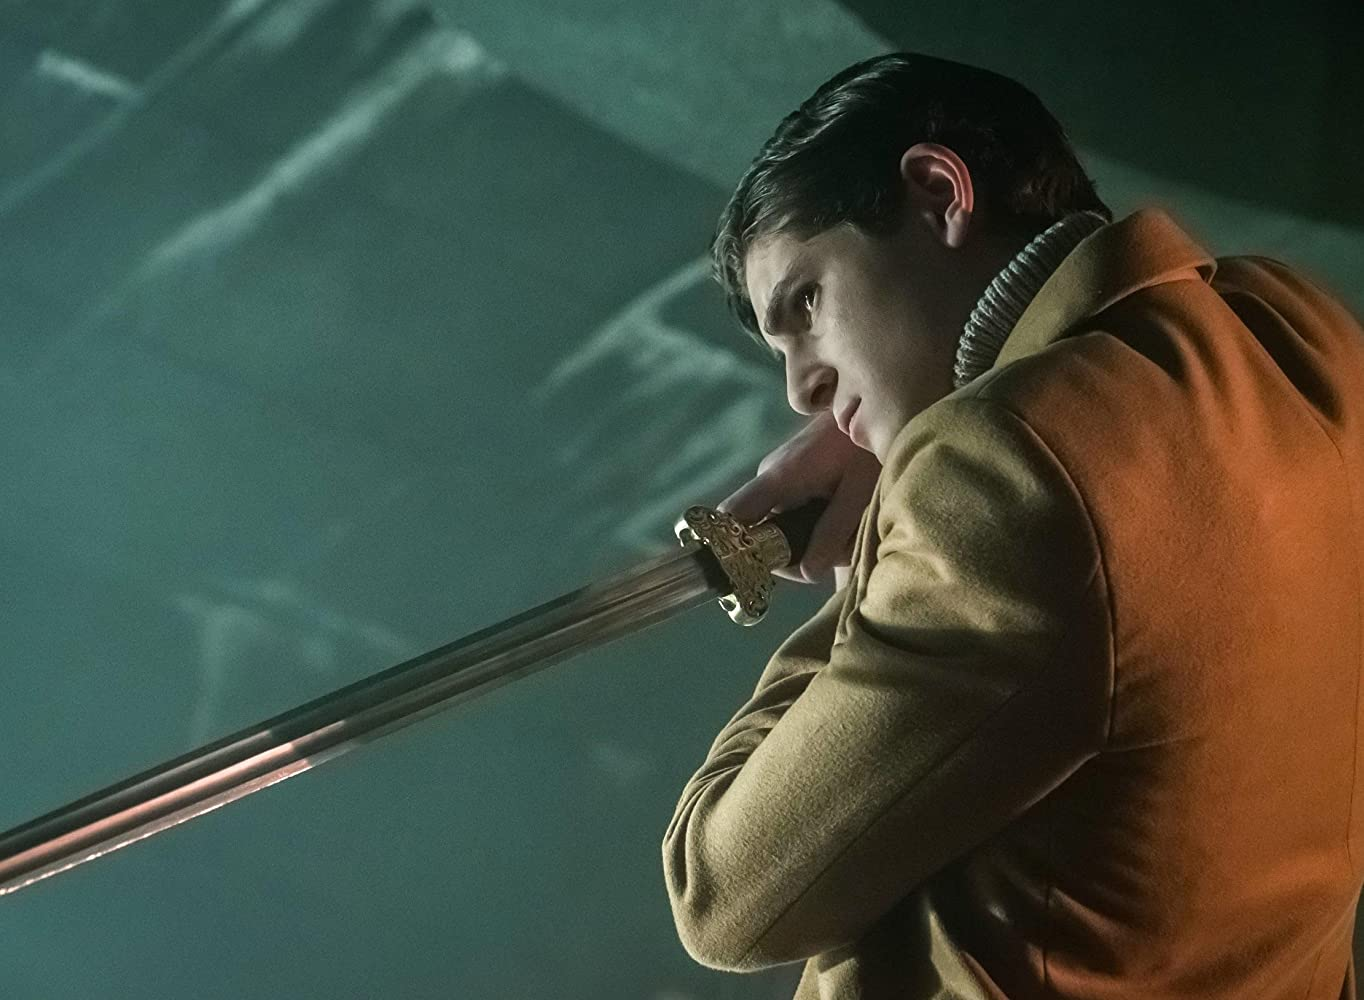 Gotham S03E17 – Heroes Rise: The Primal Riddle